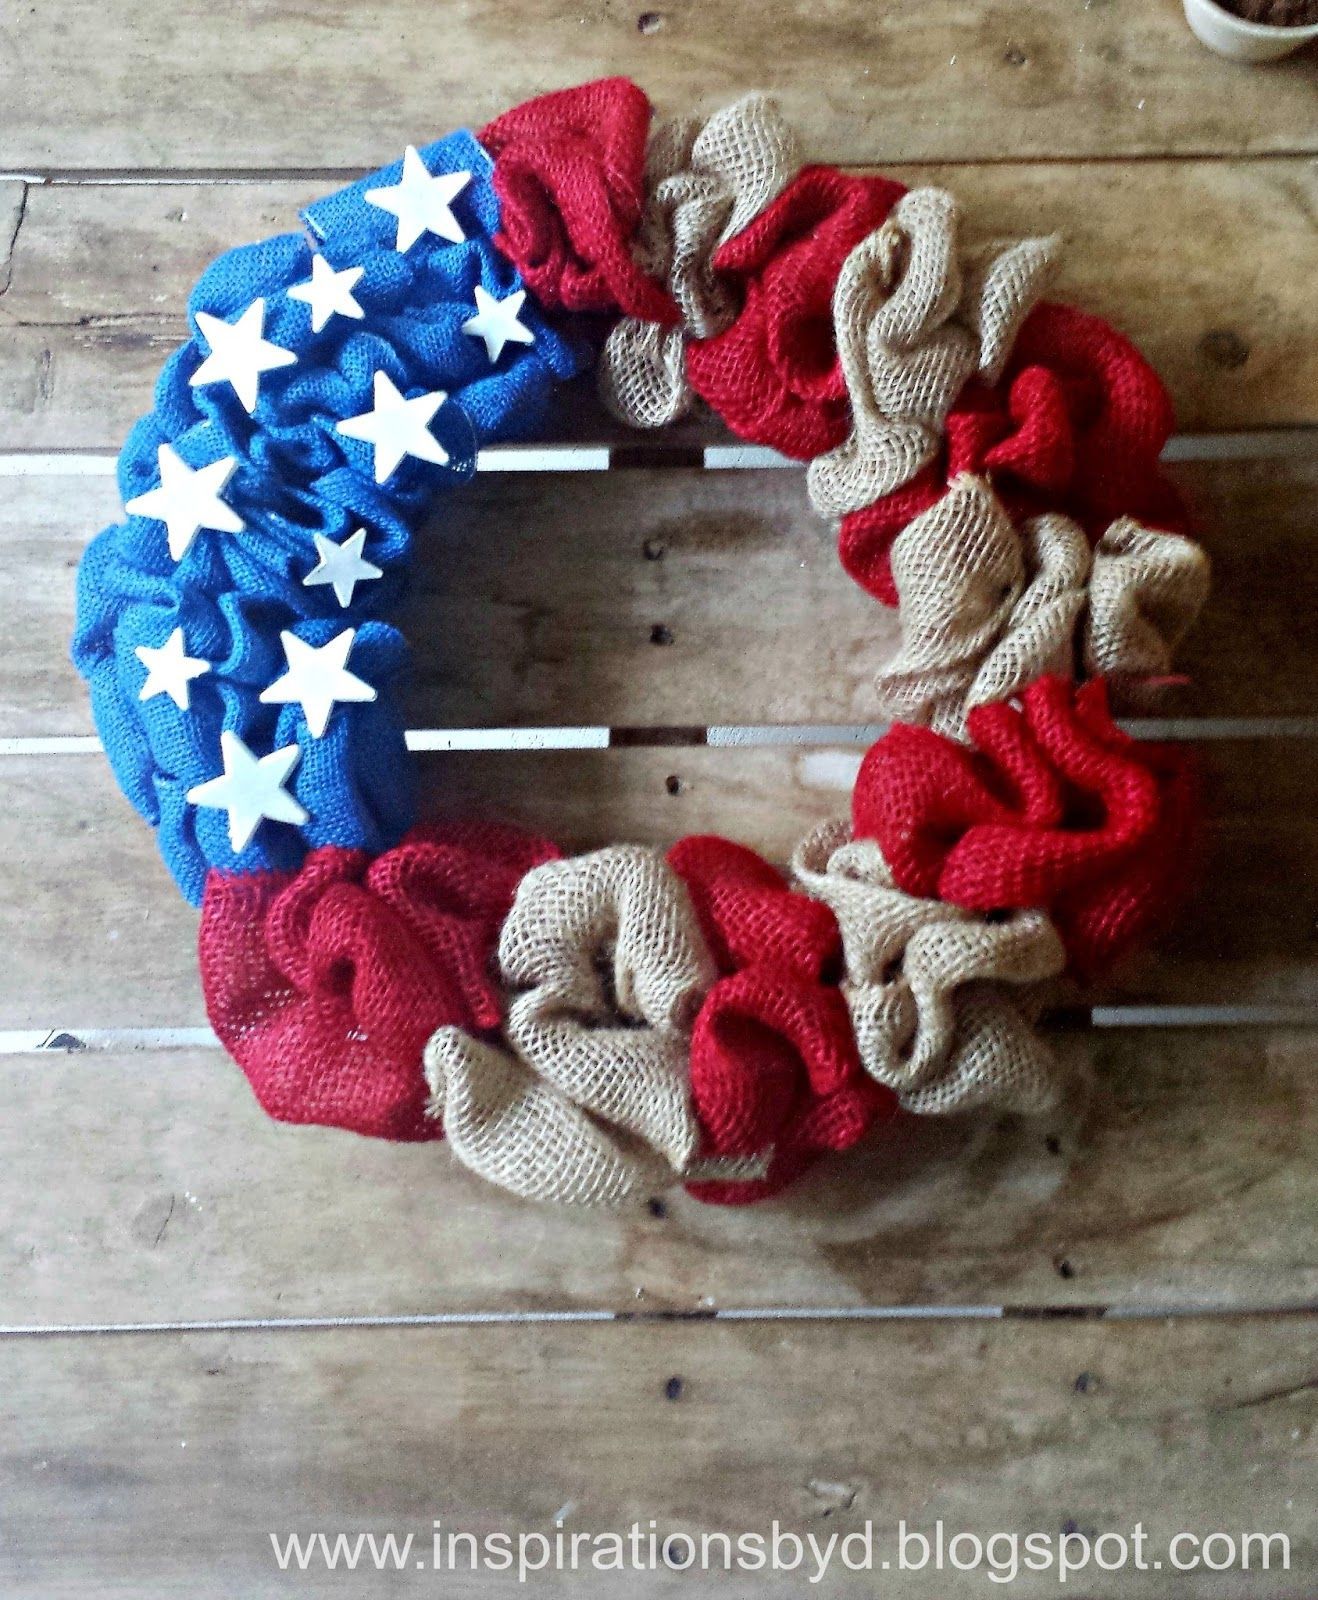 1561548146 96 cool 4th of july wreath ideas that would look perfect on your front door - Cool 4th of July Wreath Ideas That Would Look Perfect On Your Front Door